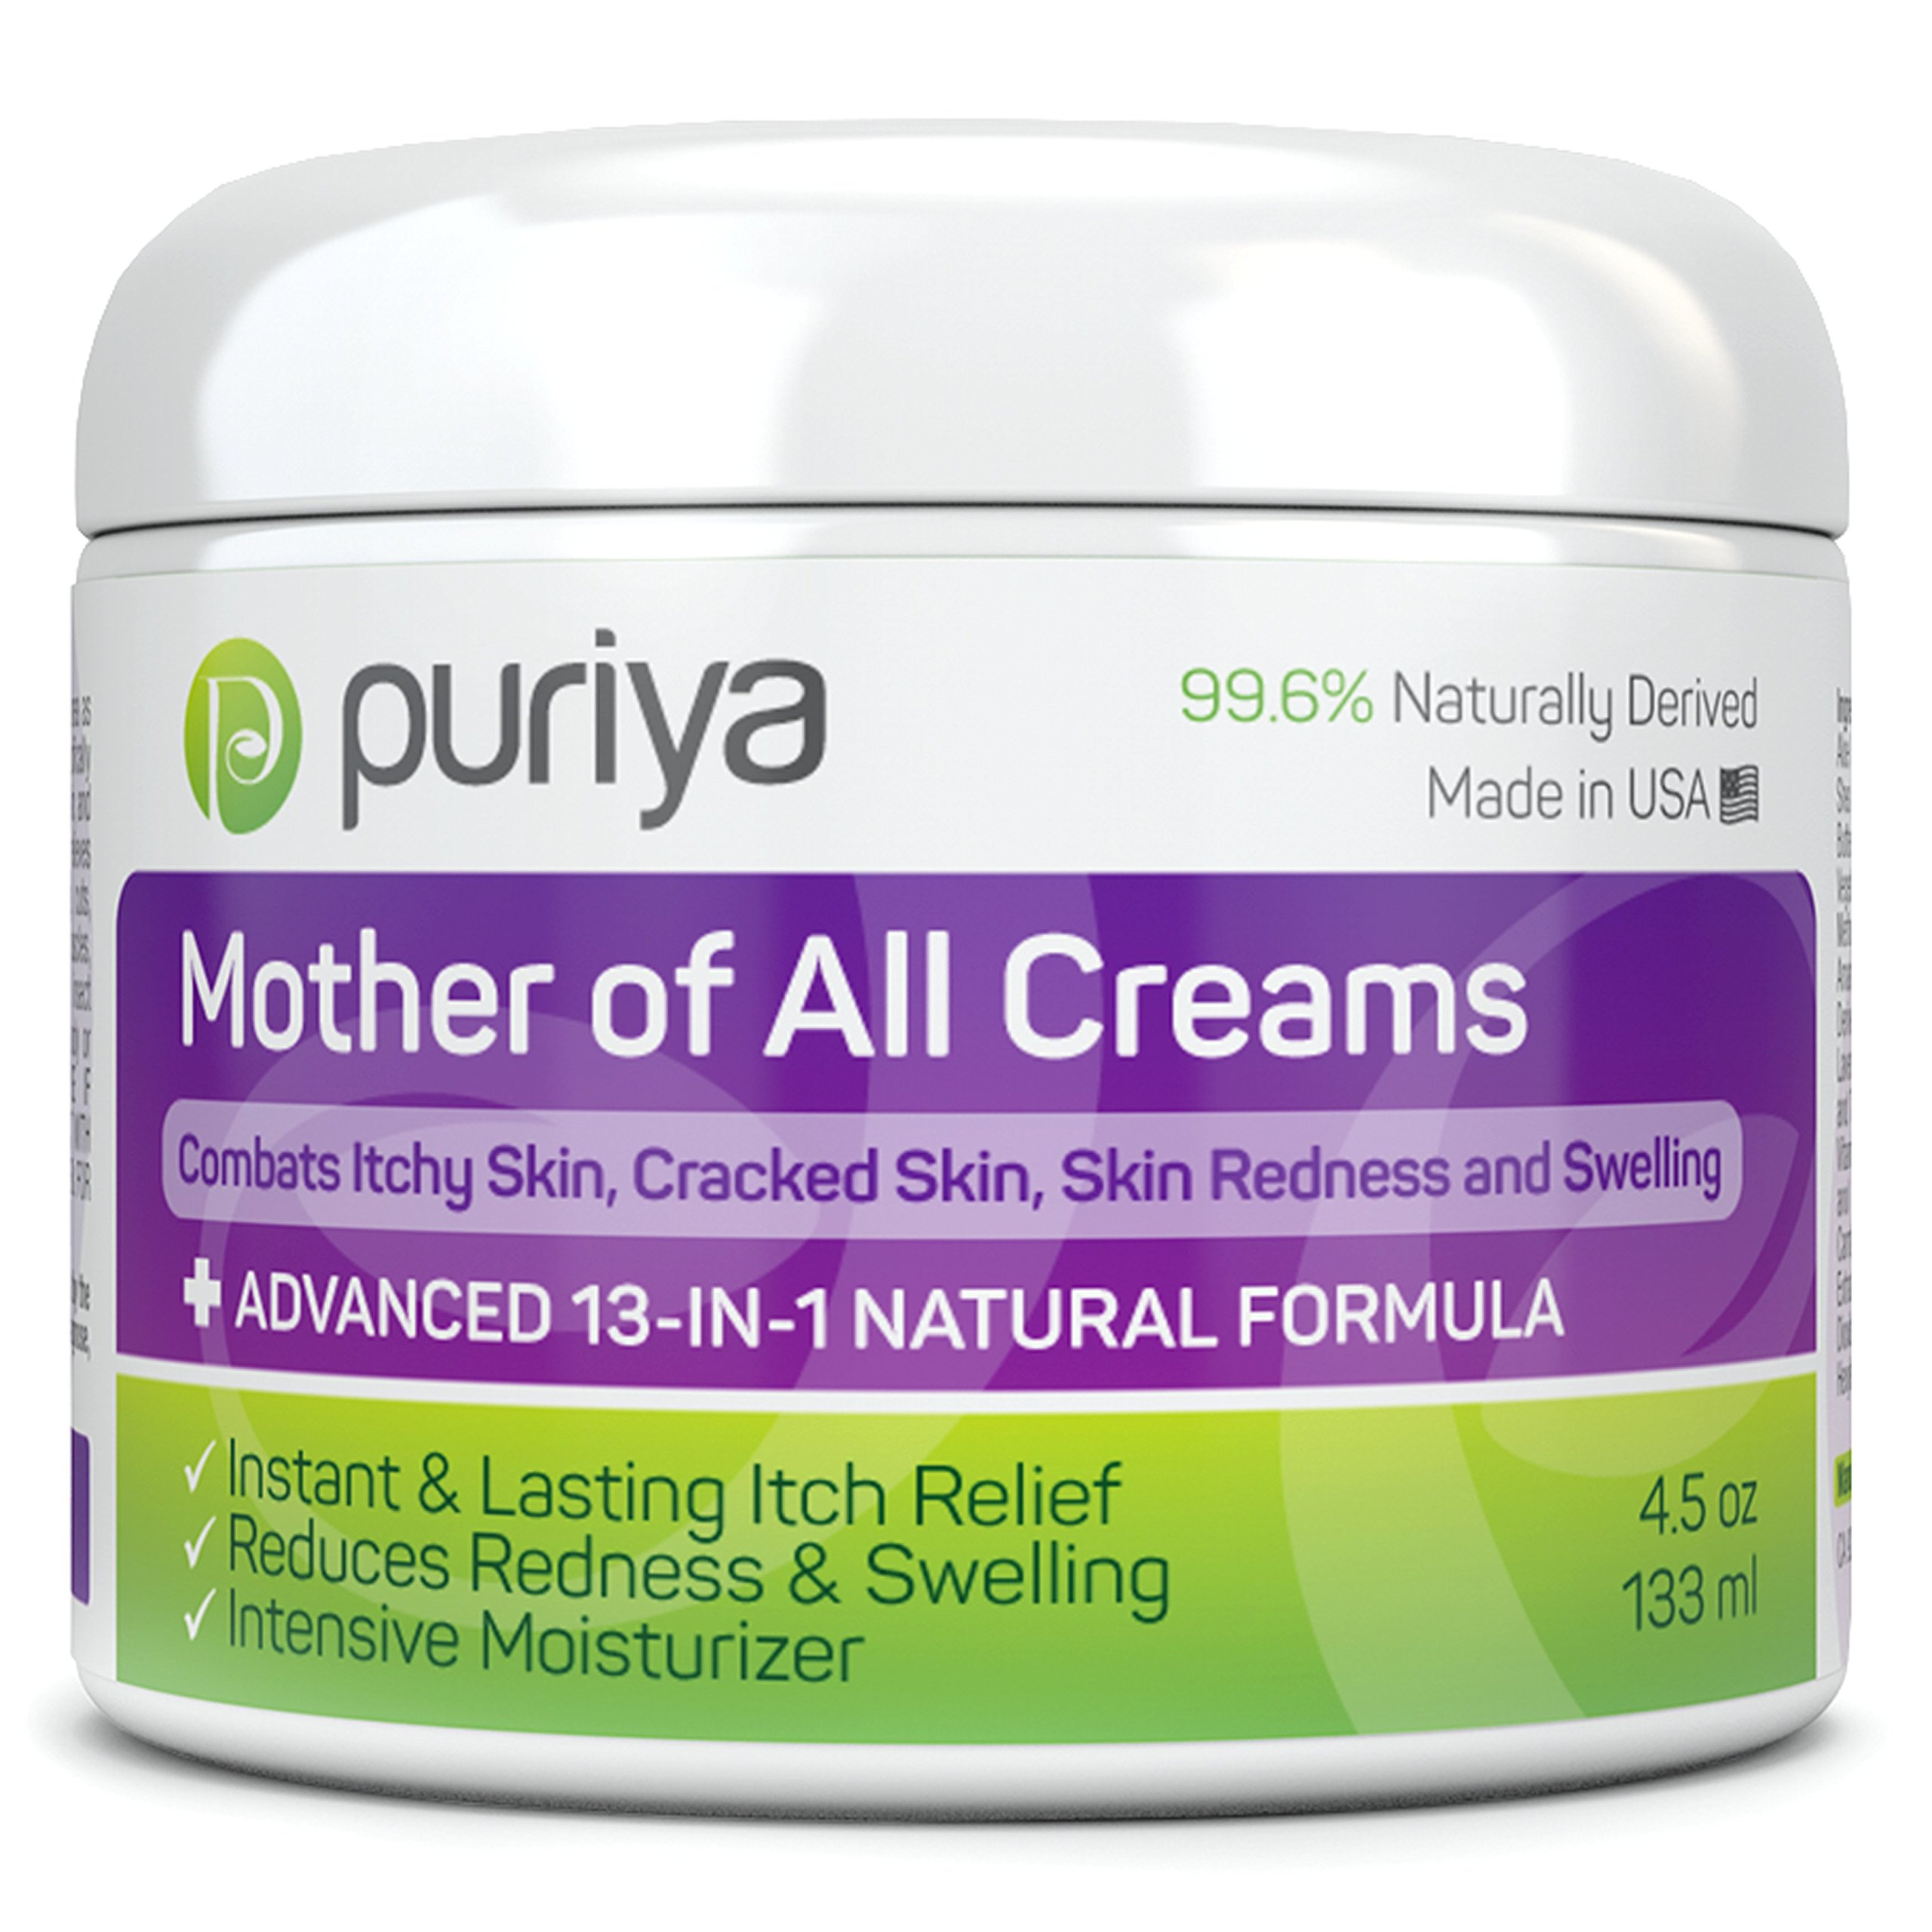 Puriya Cream For Eczema, Psoriasis, Dermatitis and Rashes. Powerful Plant Rich Formula Provides Instant and Lasting Relief For Severely Dry, Itchy, or Irritated Skin (Light Peppermint, 4.5 oz)